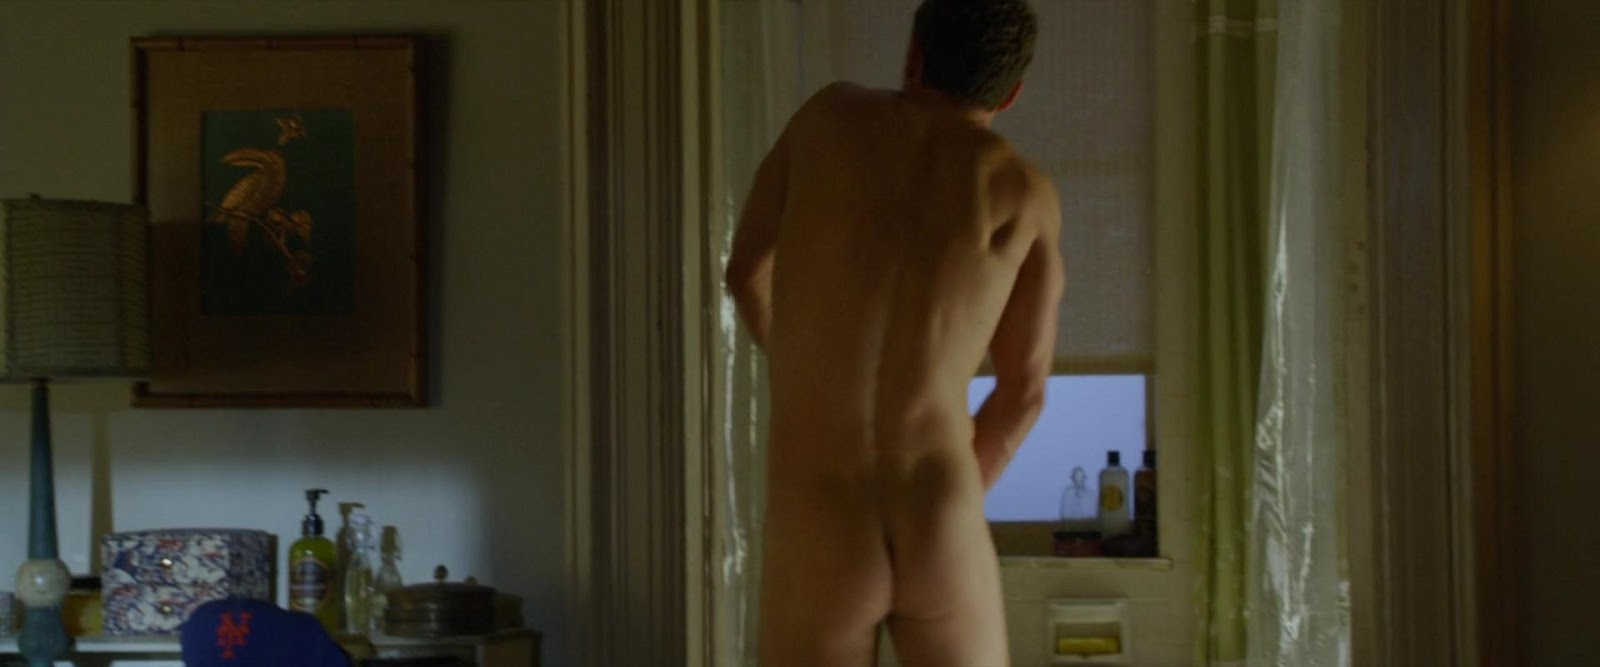 Friends with benefits 13 in the shadows 6